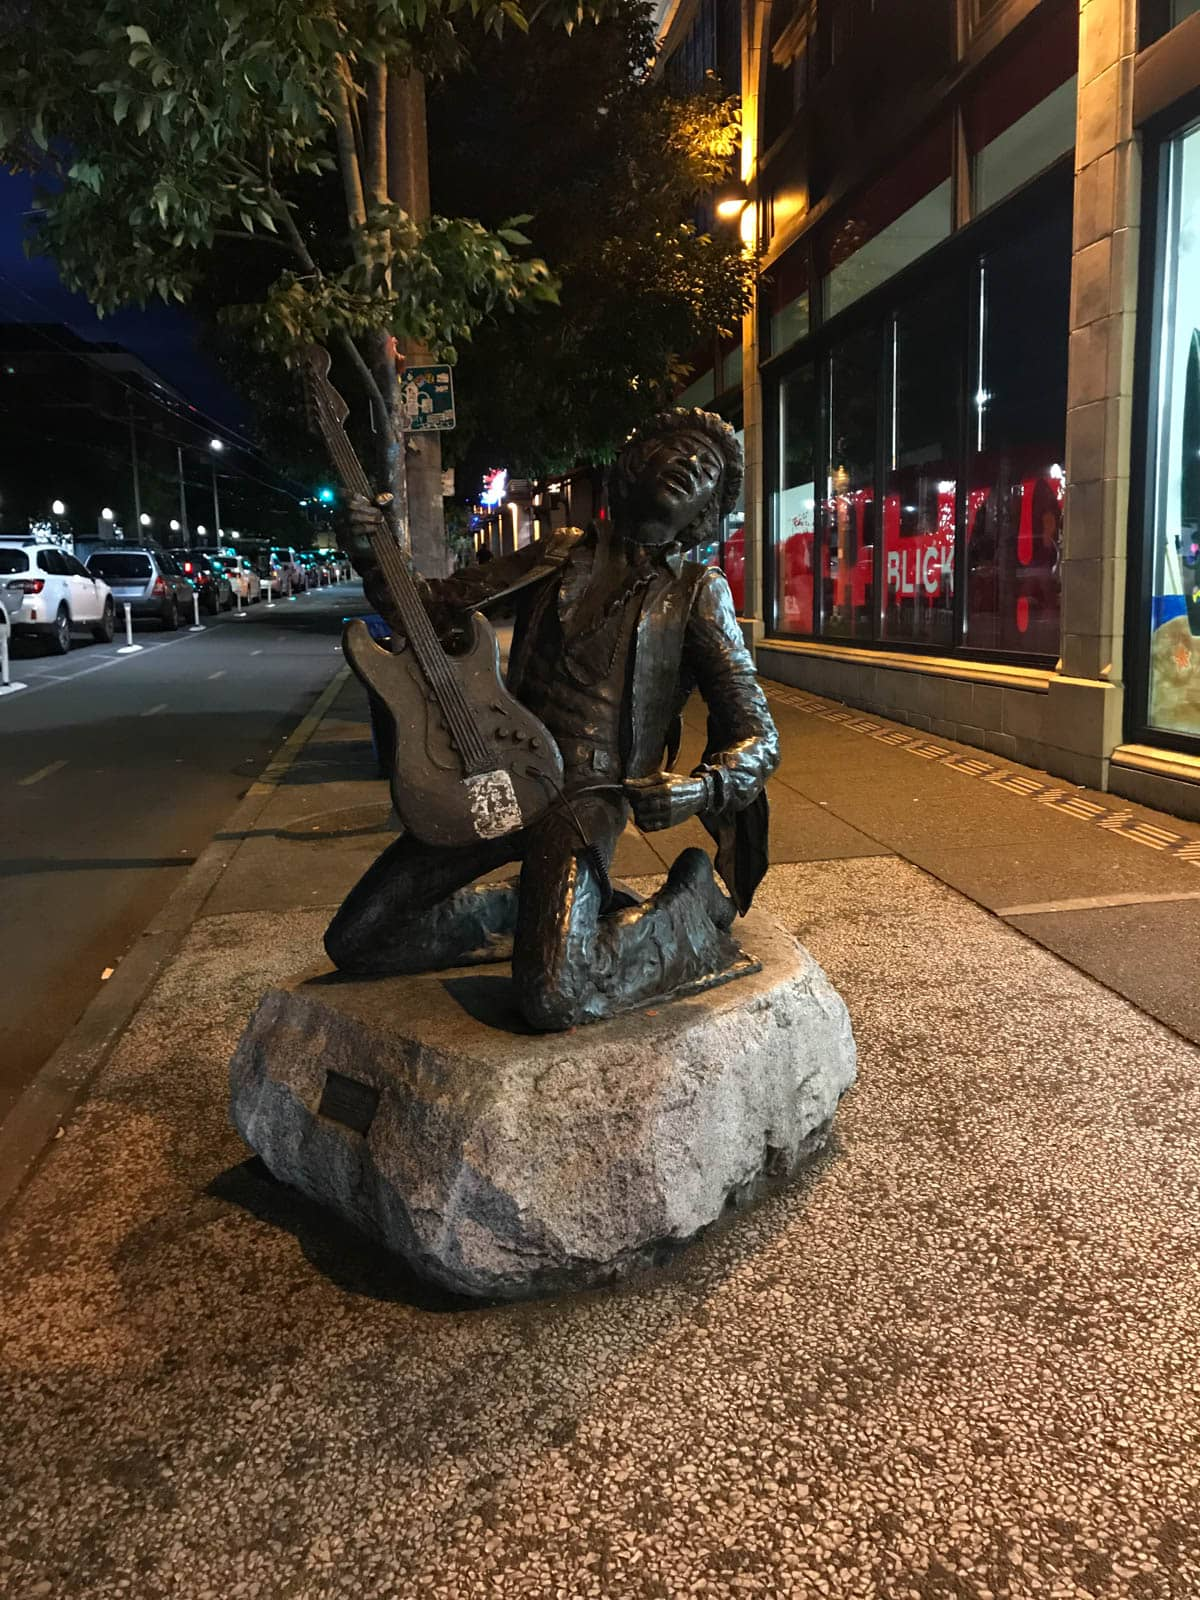 A dark bronze statue of a man playing a guitar, atop a stone with a plaque. The statue is on the sidewalk of a city, in the evening.